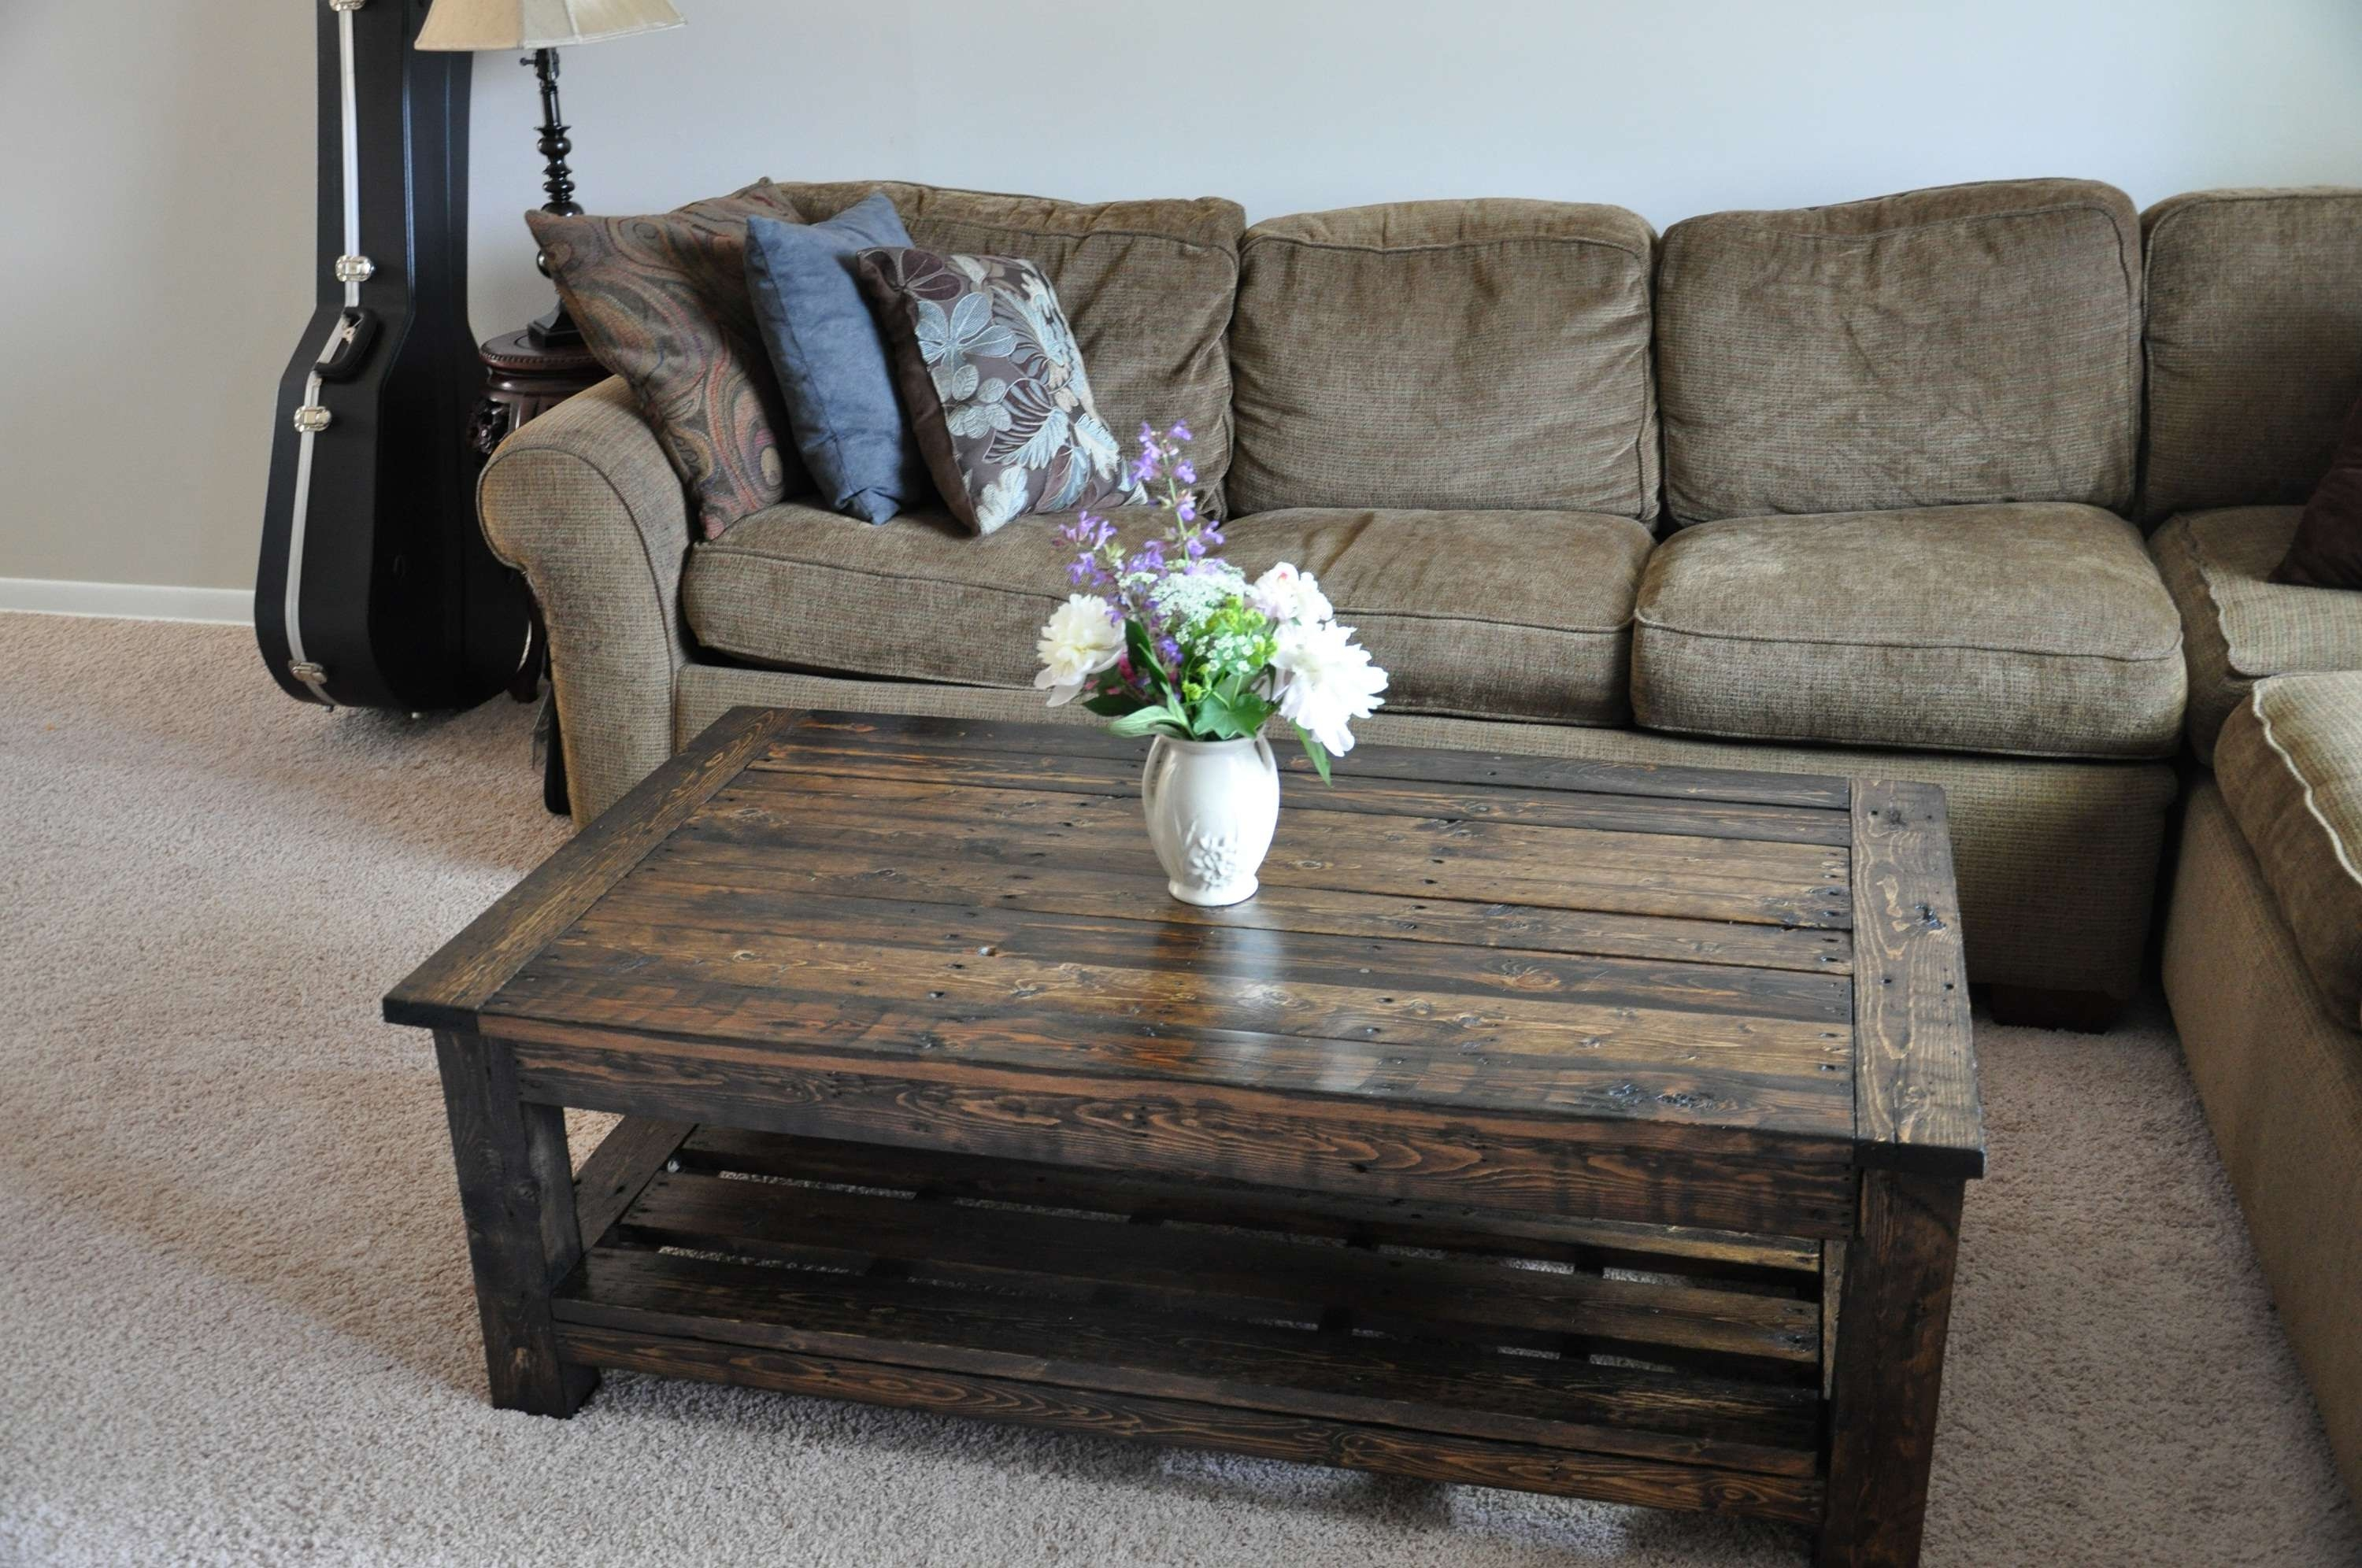 Most Recently Released Huge Coffee Tables Inside Decorations : 18 Diy Pallet Coffee Tables Guide Patterns For (View 5 of 20)